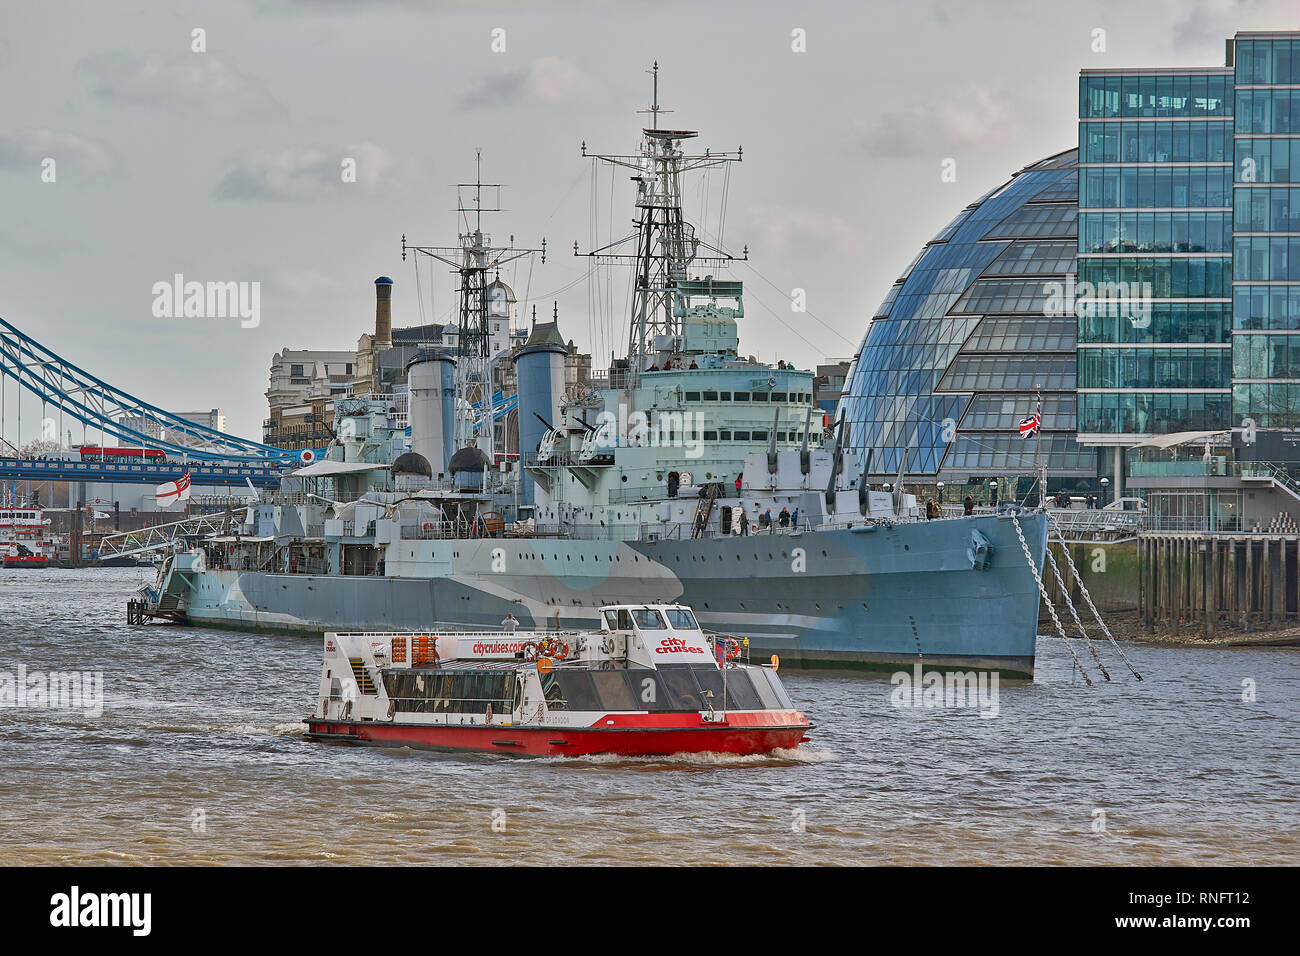 LONDON RIVER THAMES HMS BELFAST AND CITY CRUISE BOAT ON THE WATER - Stock Image